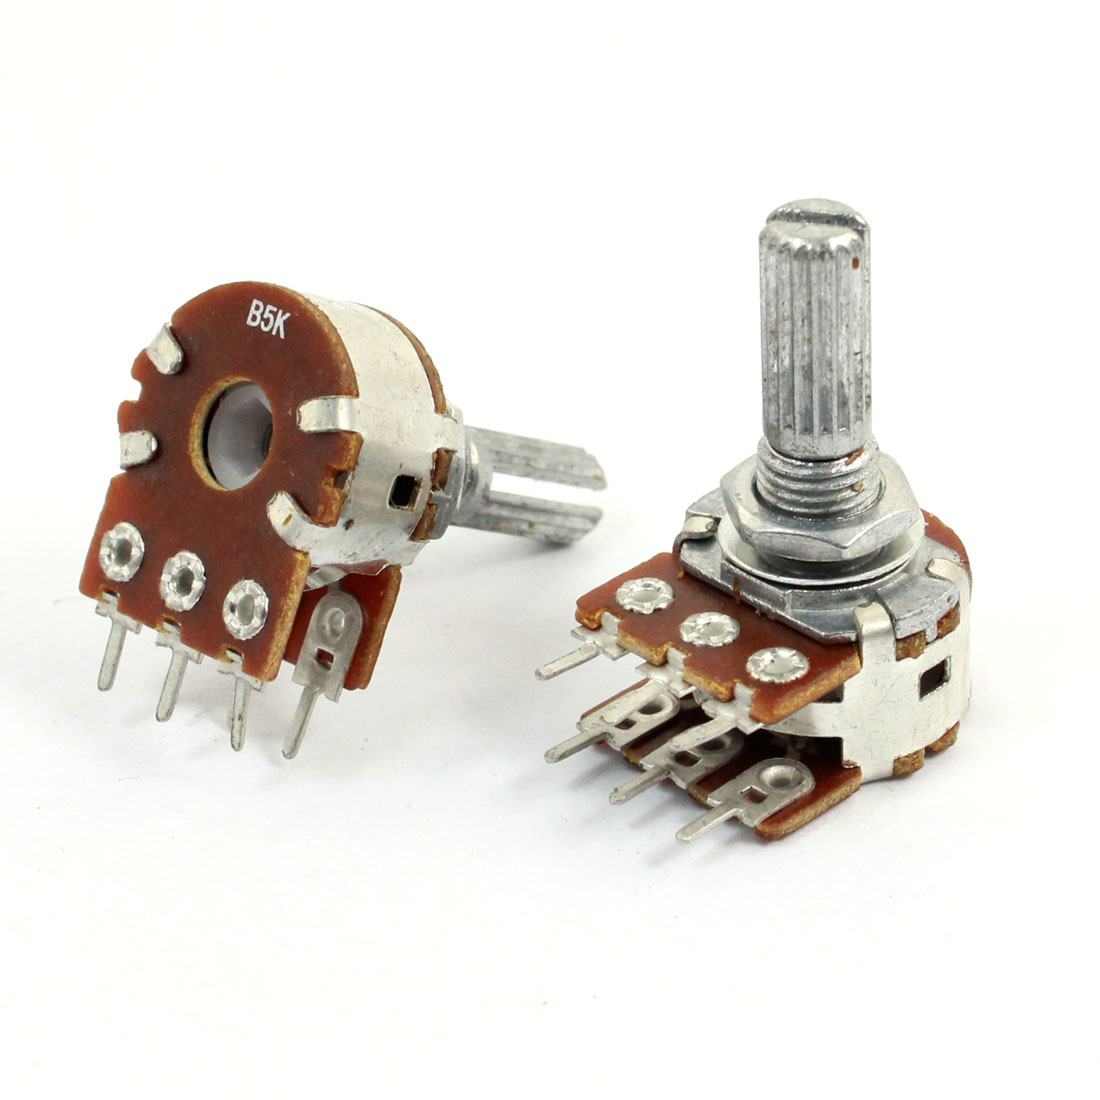 2 Pcs 5K Ohm Knurled Shaft Adjust Double Linears Potentiometers AC 250V